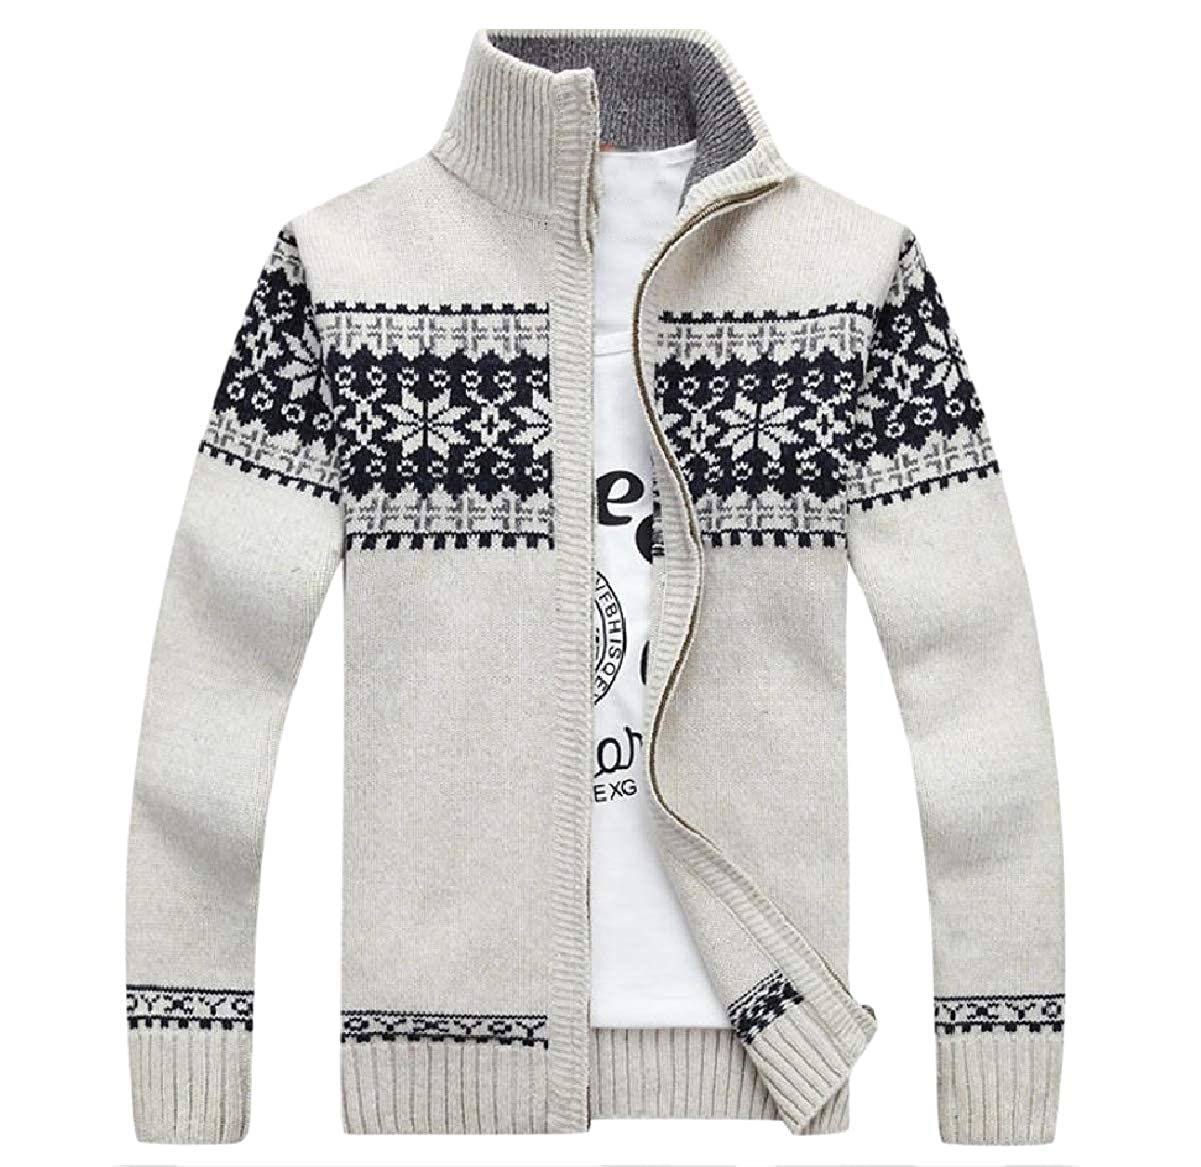 NestYu Men Knitted Sweater Relaxed Fit Full Zip Patterned Open-Front